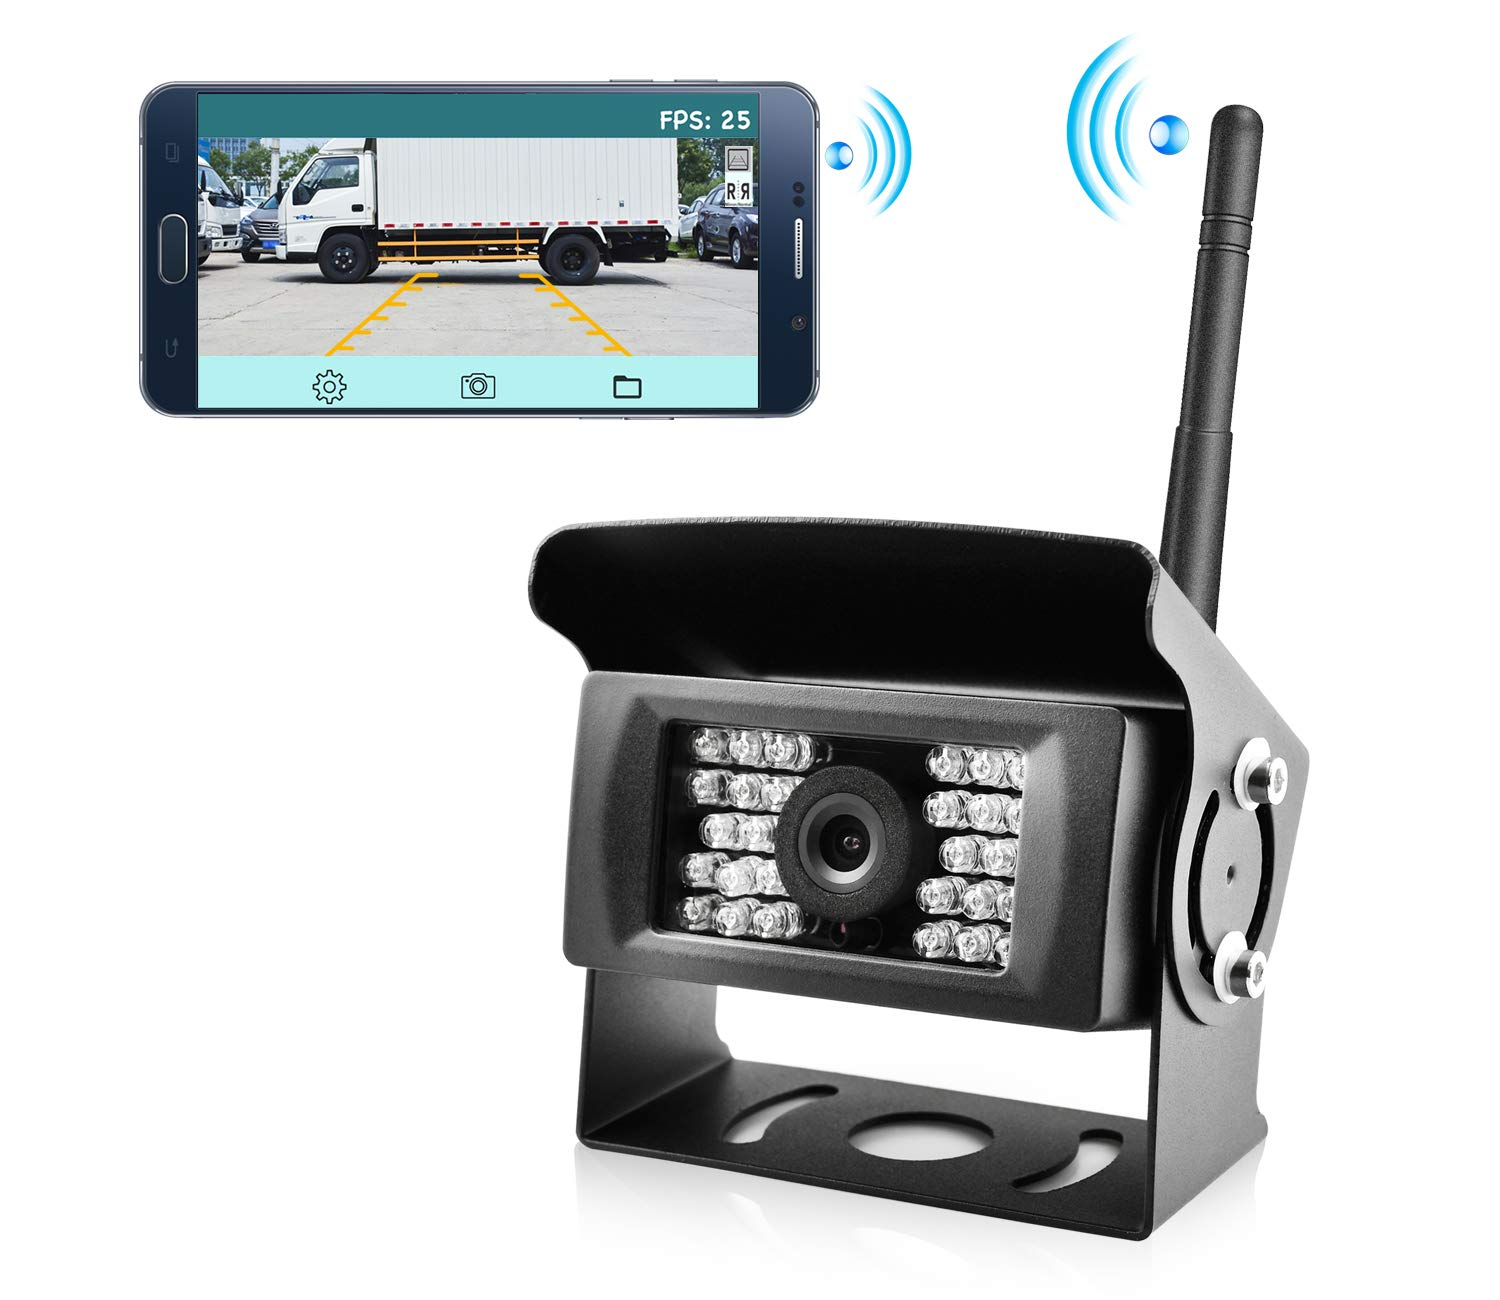 Car or Truck iBall Digital Pro Wireless Magnetic Trailer Hitch Rear View Camera LCD Monitor Fits Any Vehicle